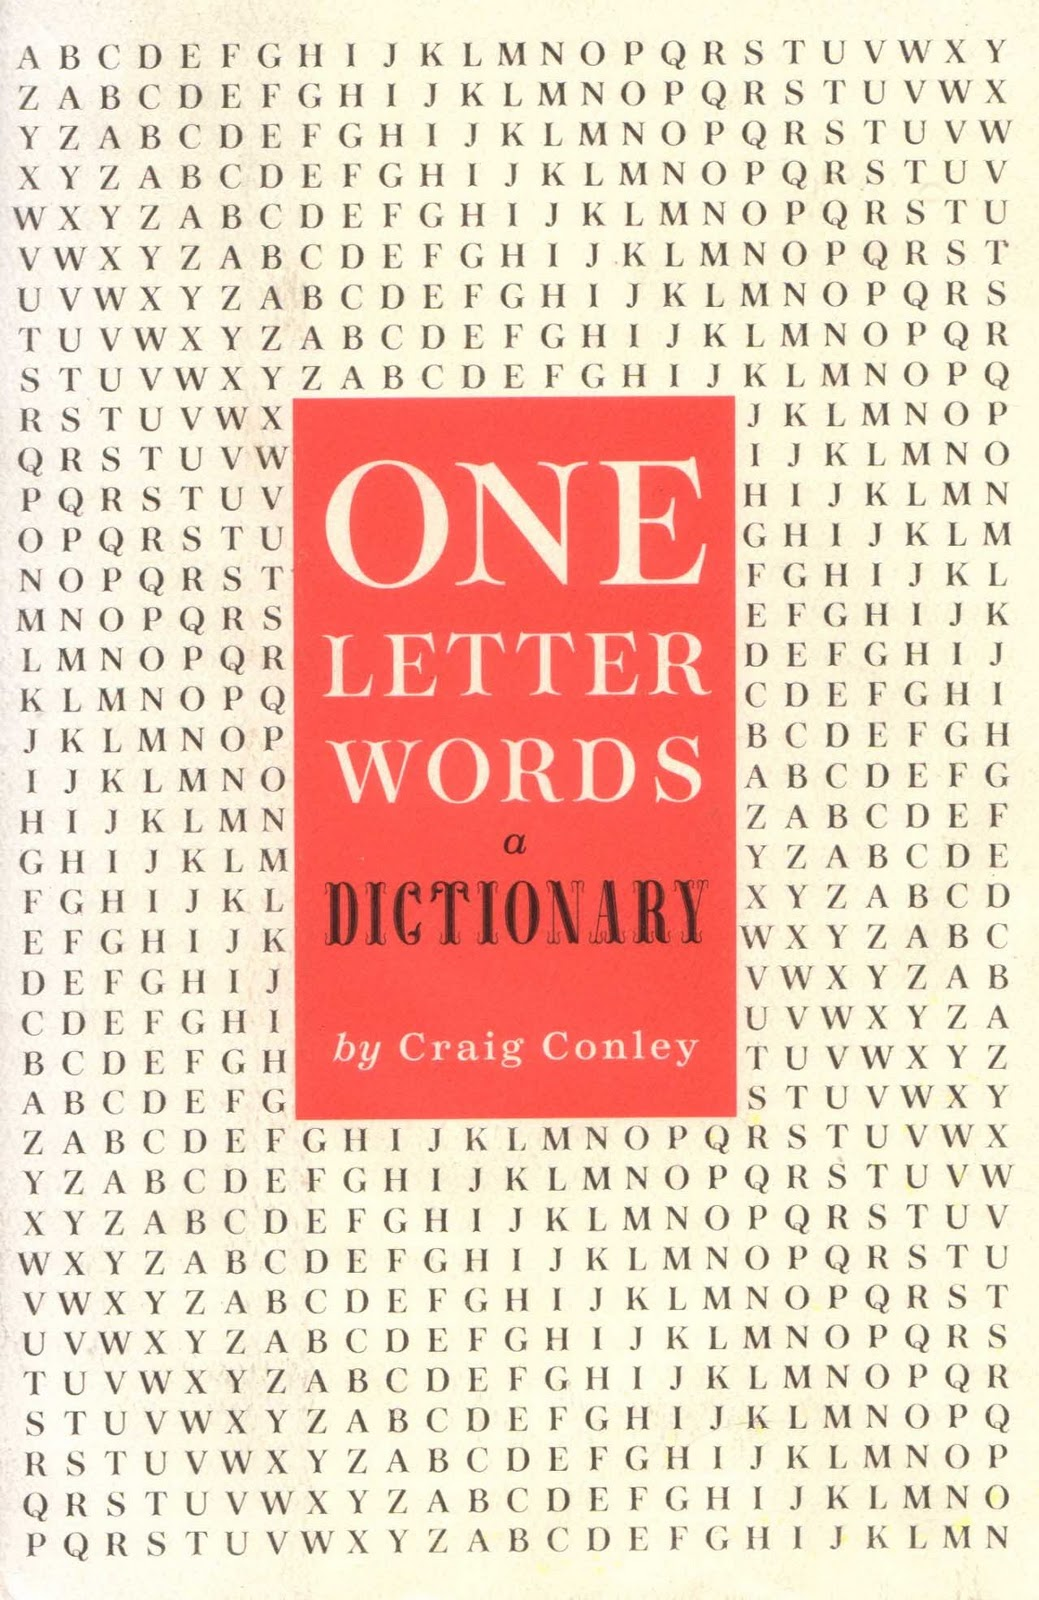 g letter words in dictionary